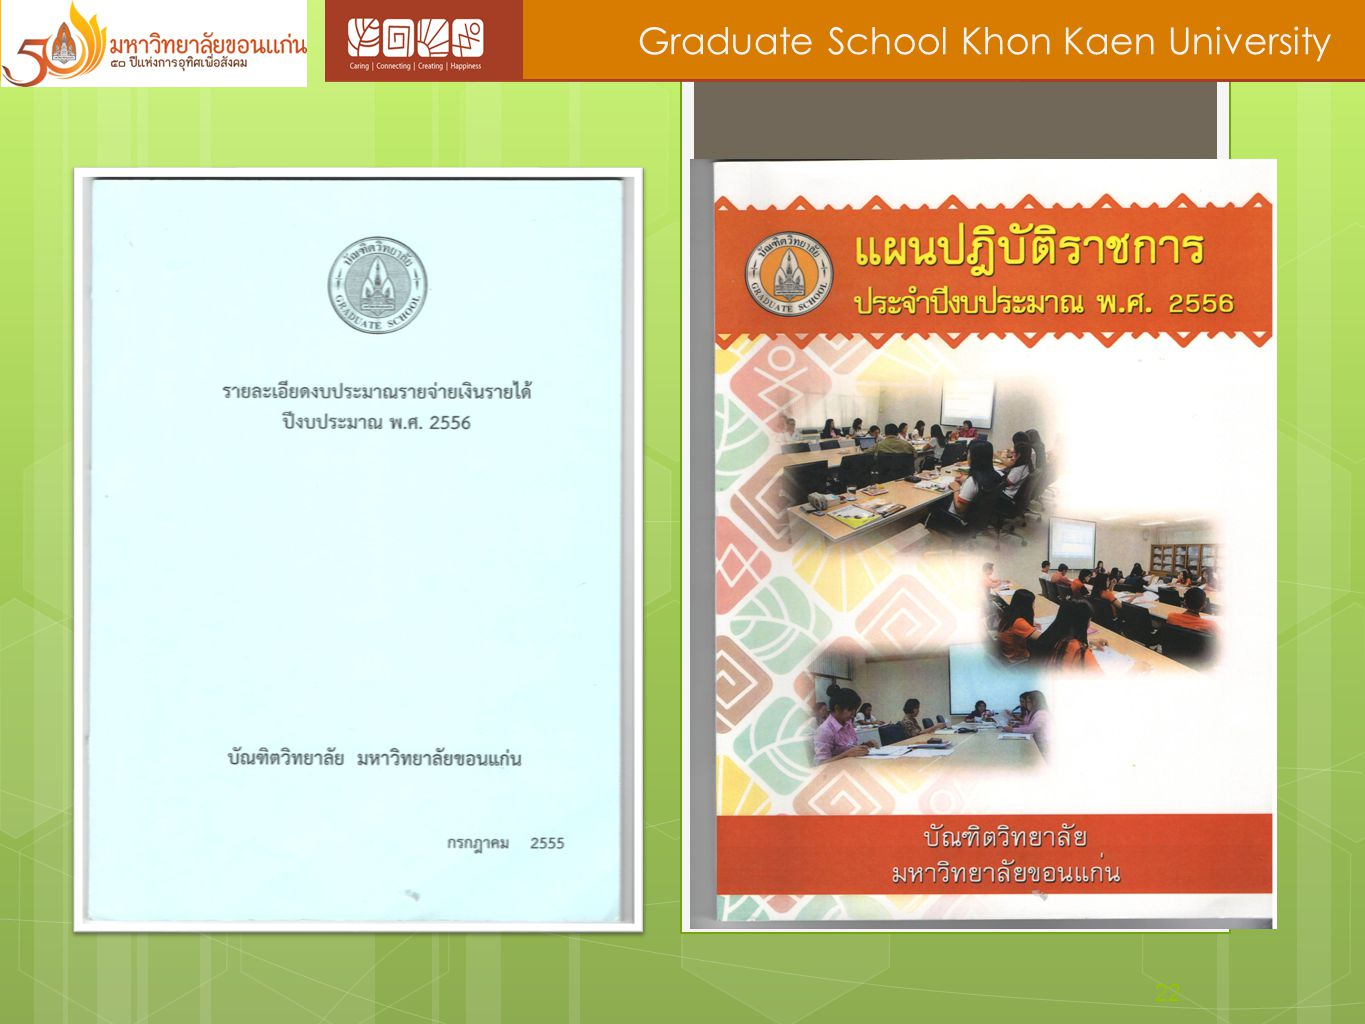 22 Graduate School Khon Kaen University